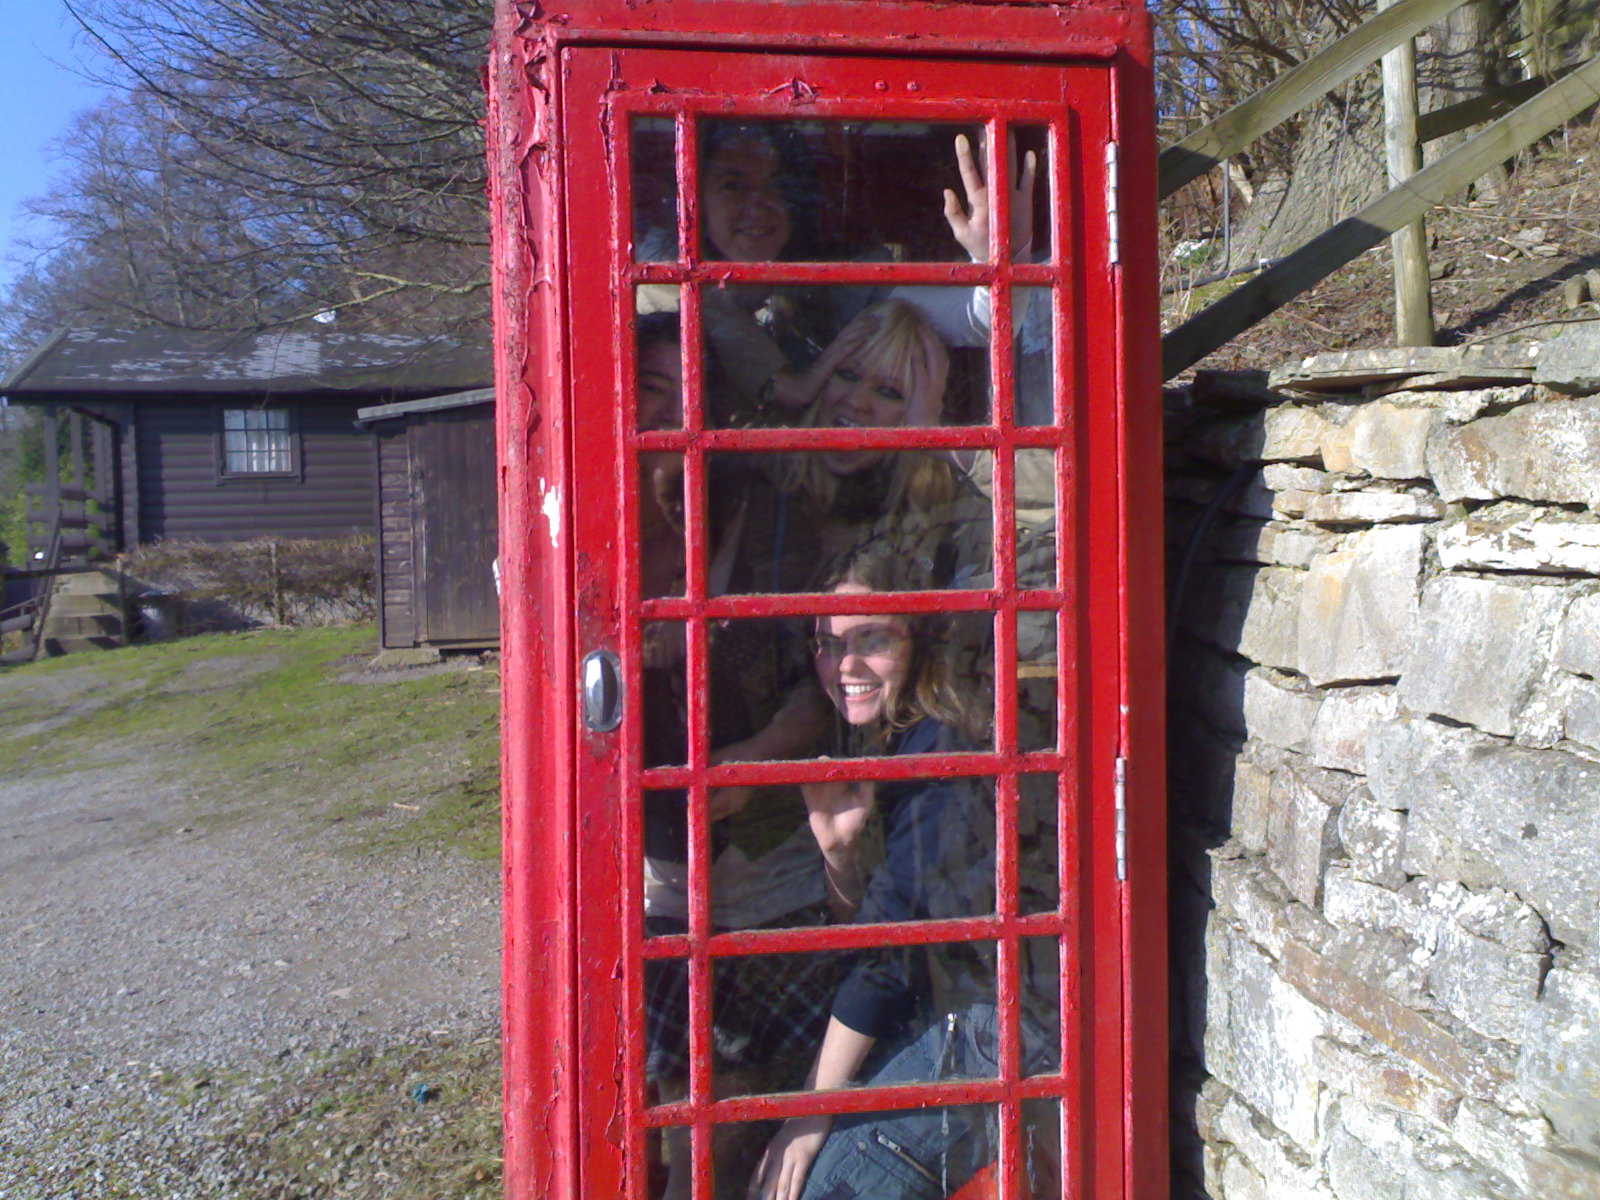 conference call in phone box